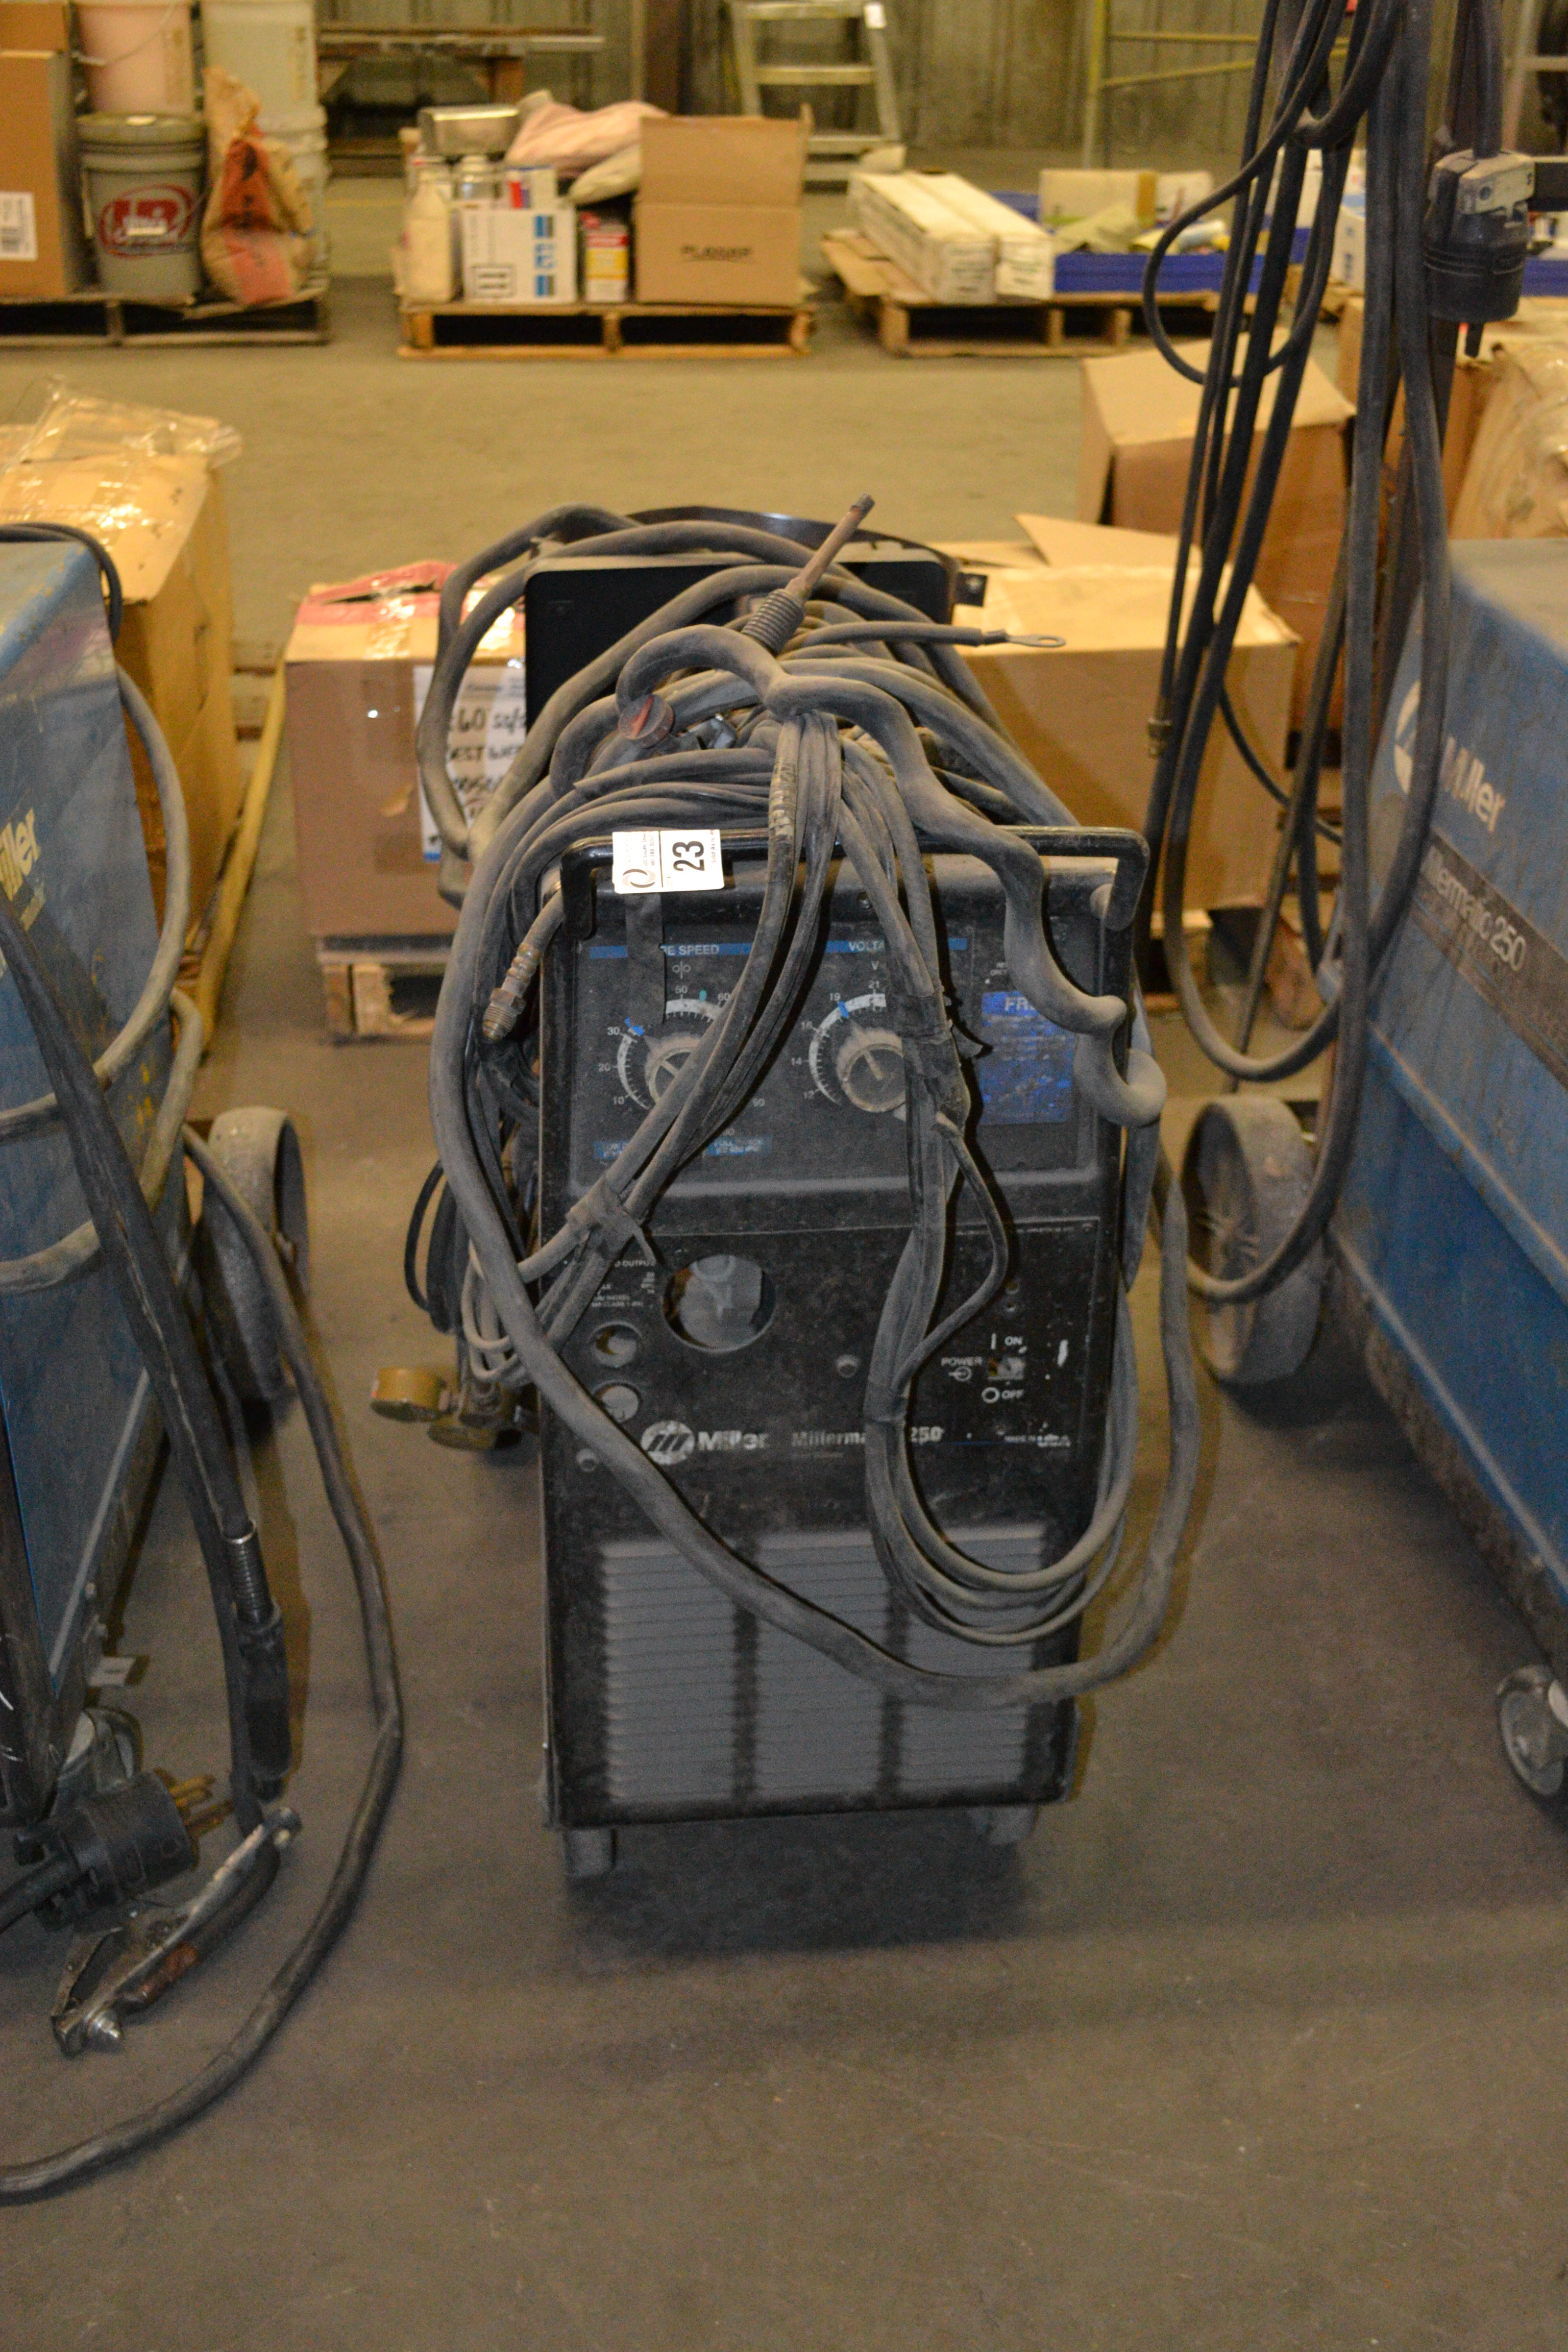 Lot 23 - Millermatic 250 welder (parts)